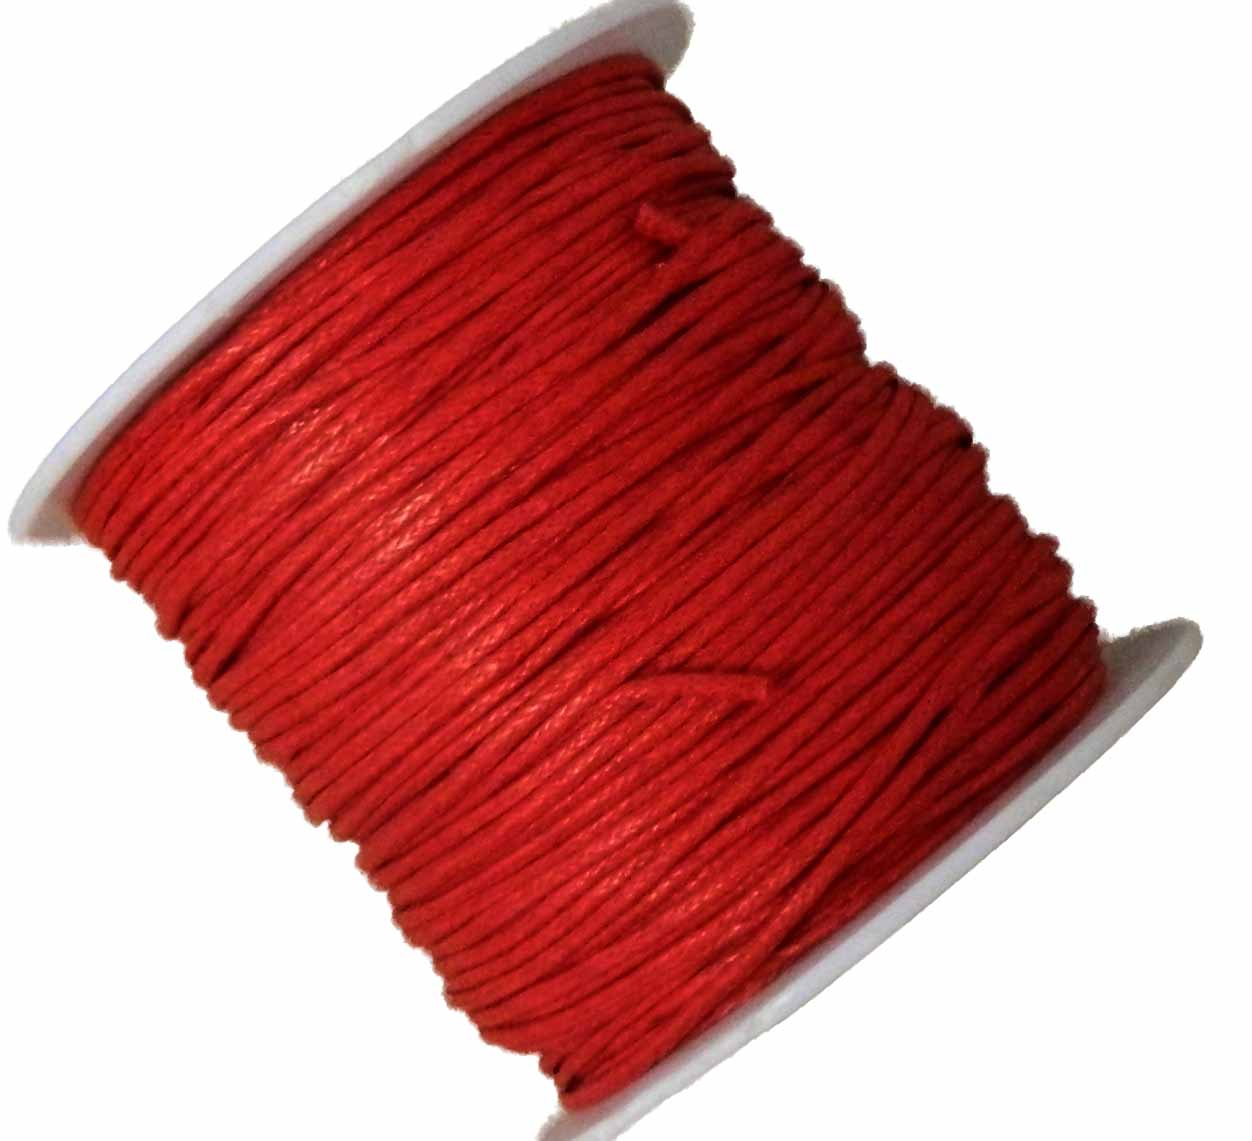 1mm Waxed Cotton Jewelry Macrame Craft Cord 80 Yards Wolven Round Red